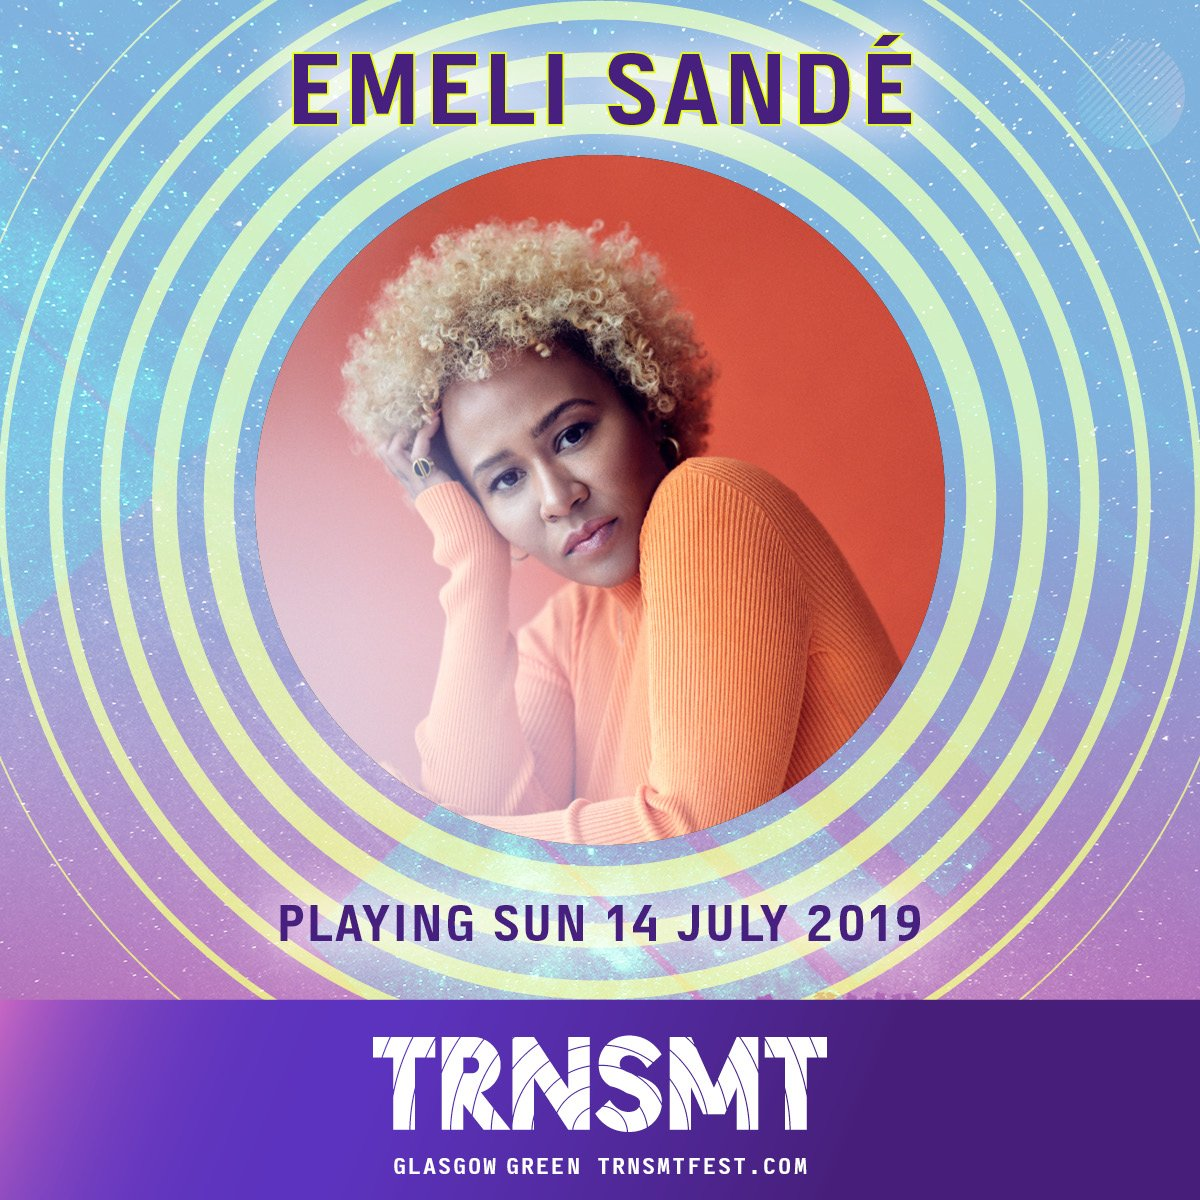 We welcome Scotland's own @emelisande to the #TRNSMT2019 line up as she joins us in Glasgow Green next week in place of Jess Glynne.   Sunday day tickets are sold out, but you can still get 2-day and weekend tickets. BUY NOW ~ http://trnsmt.co/tickets